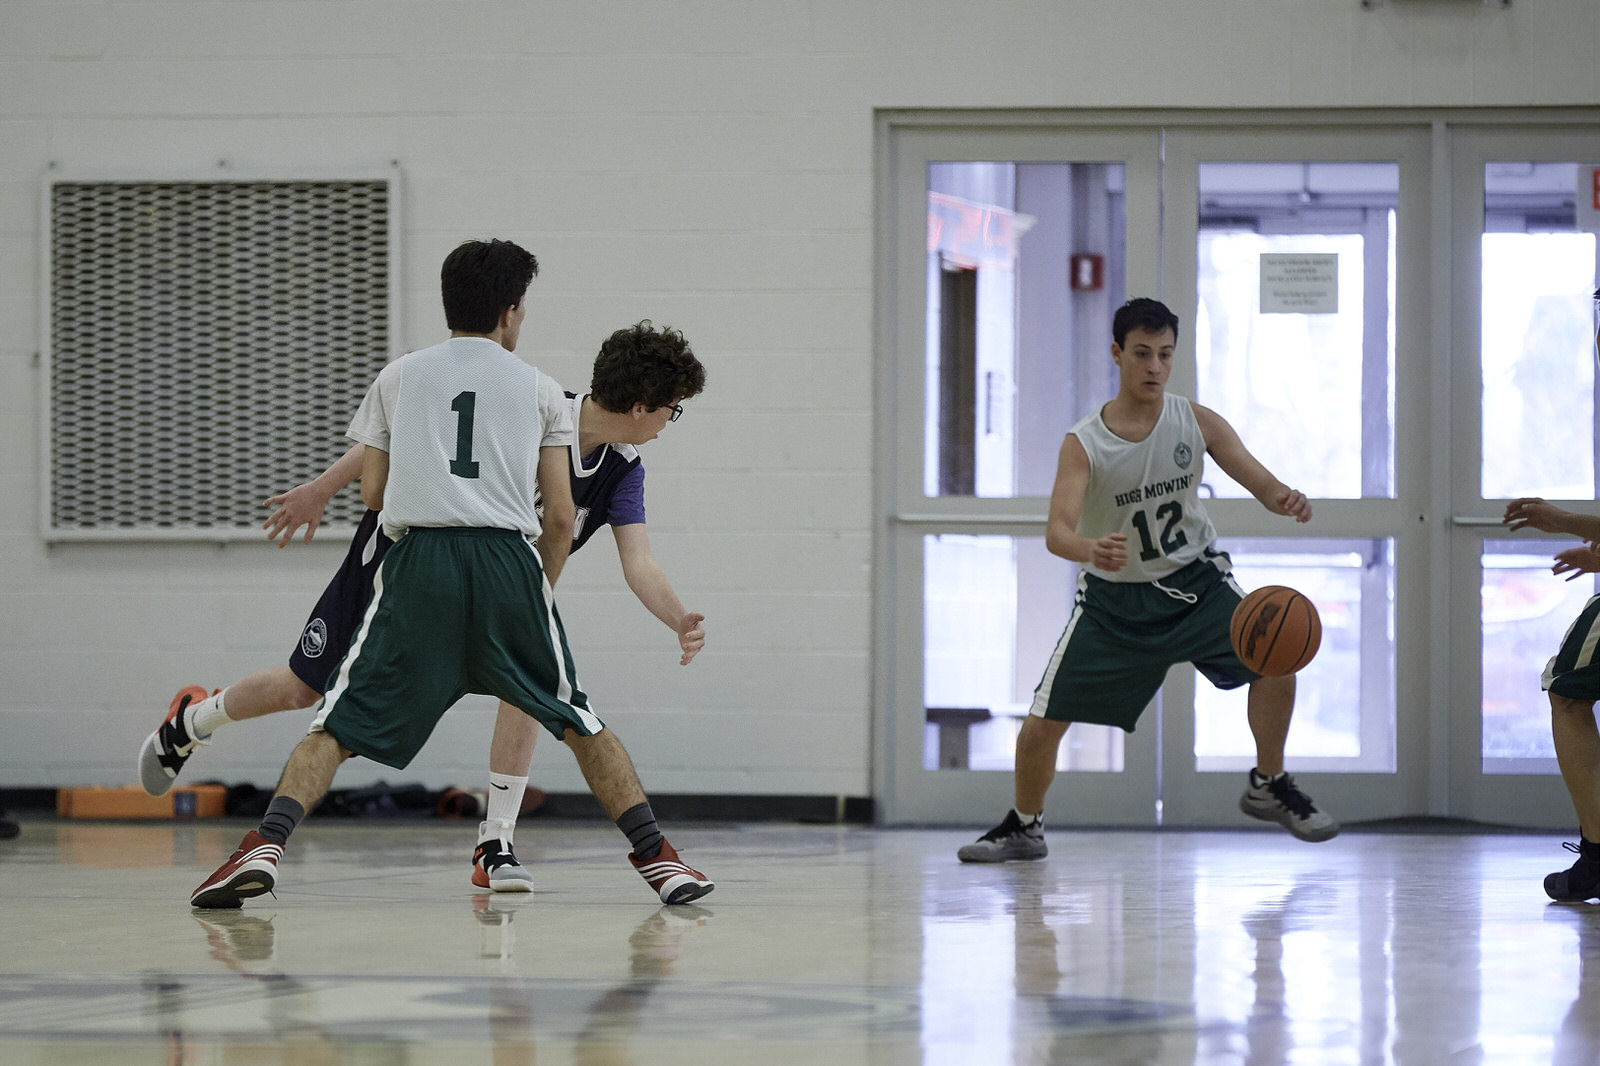 Dublin JV Boys Basketball vs High Mowing School - Jan 26 2019 - 0187.jpg